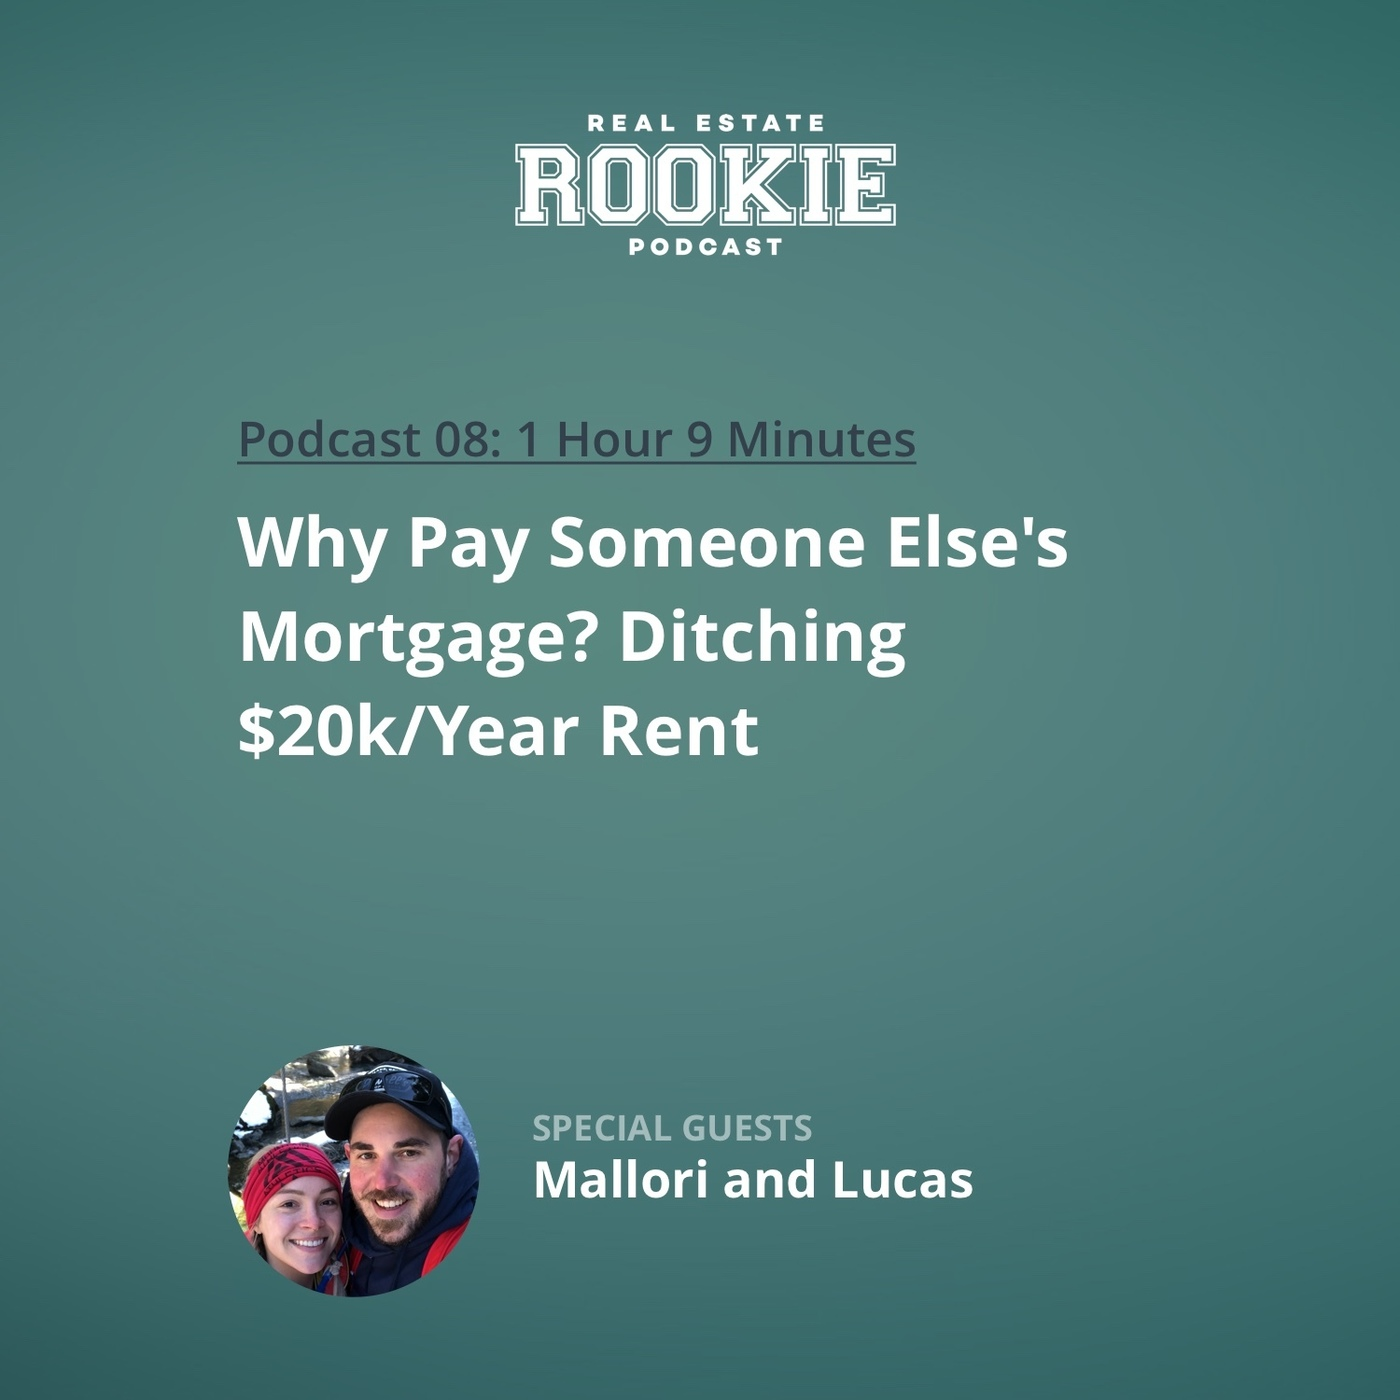 Why Pay Someone Else's Mortgage? Ditching $20k/Year Rent with Mallori and Lucas